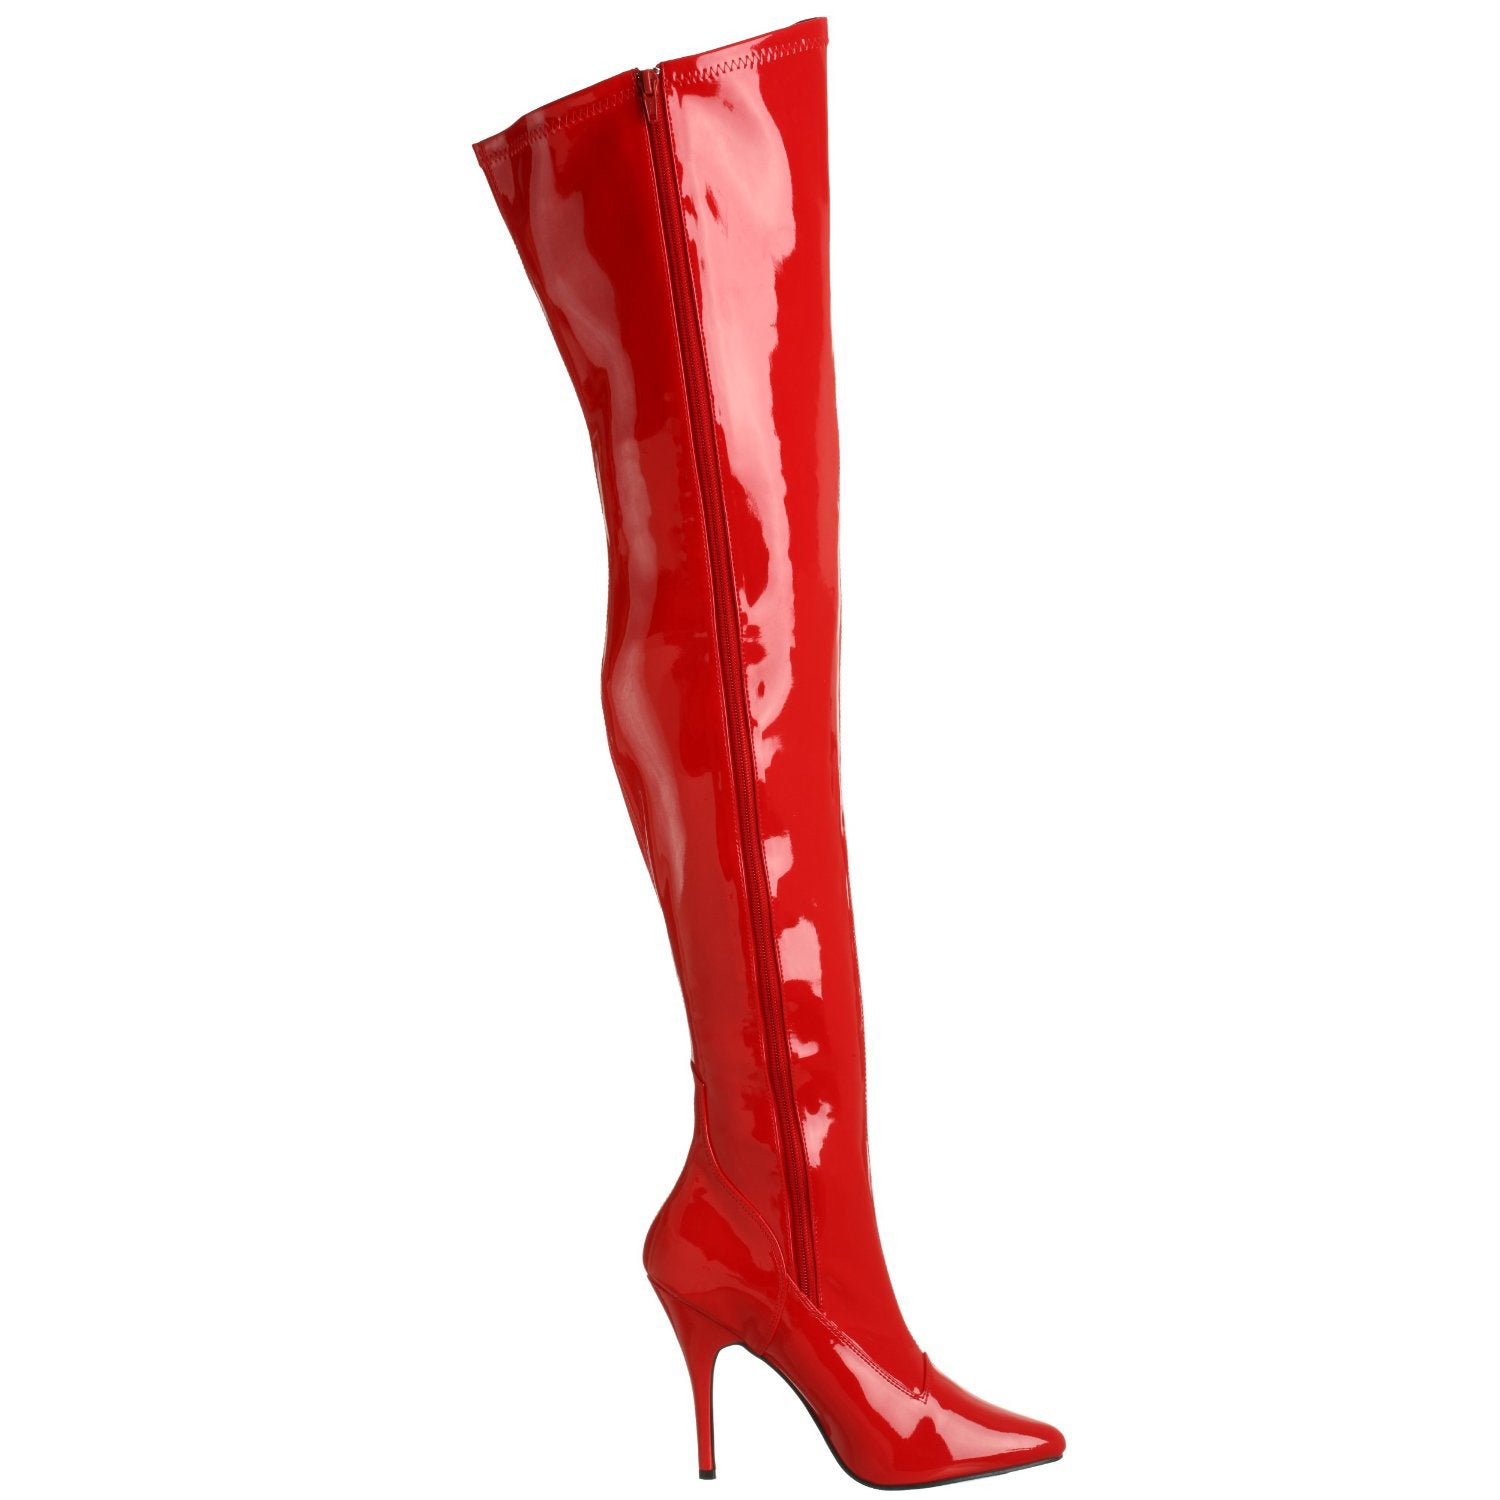 3e505cc6d63 Shop Pleaser Women s SEDUCE-3000 5-inch Stiletto Heel Plain Stretch Thigh  High Boots - Free Shipping Today - Overstock - 8609966